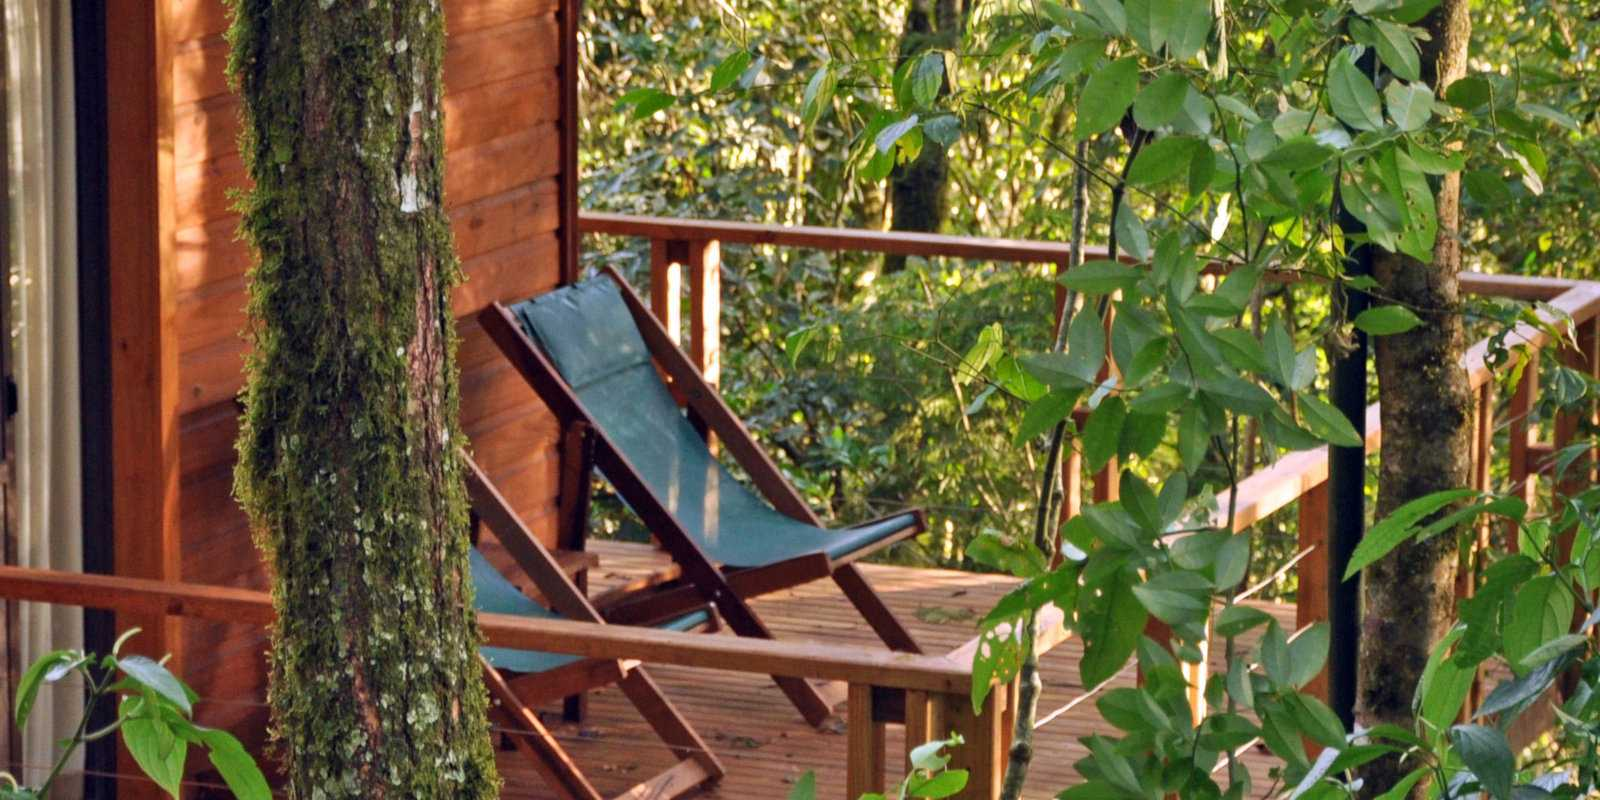 Road-tripping in Argentina - sleep in a romantic treehouse bungalow at the Don Mocona Virgin Lodge.